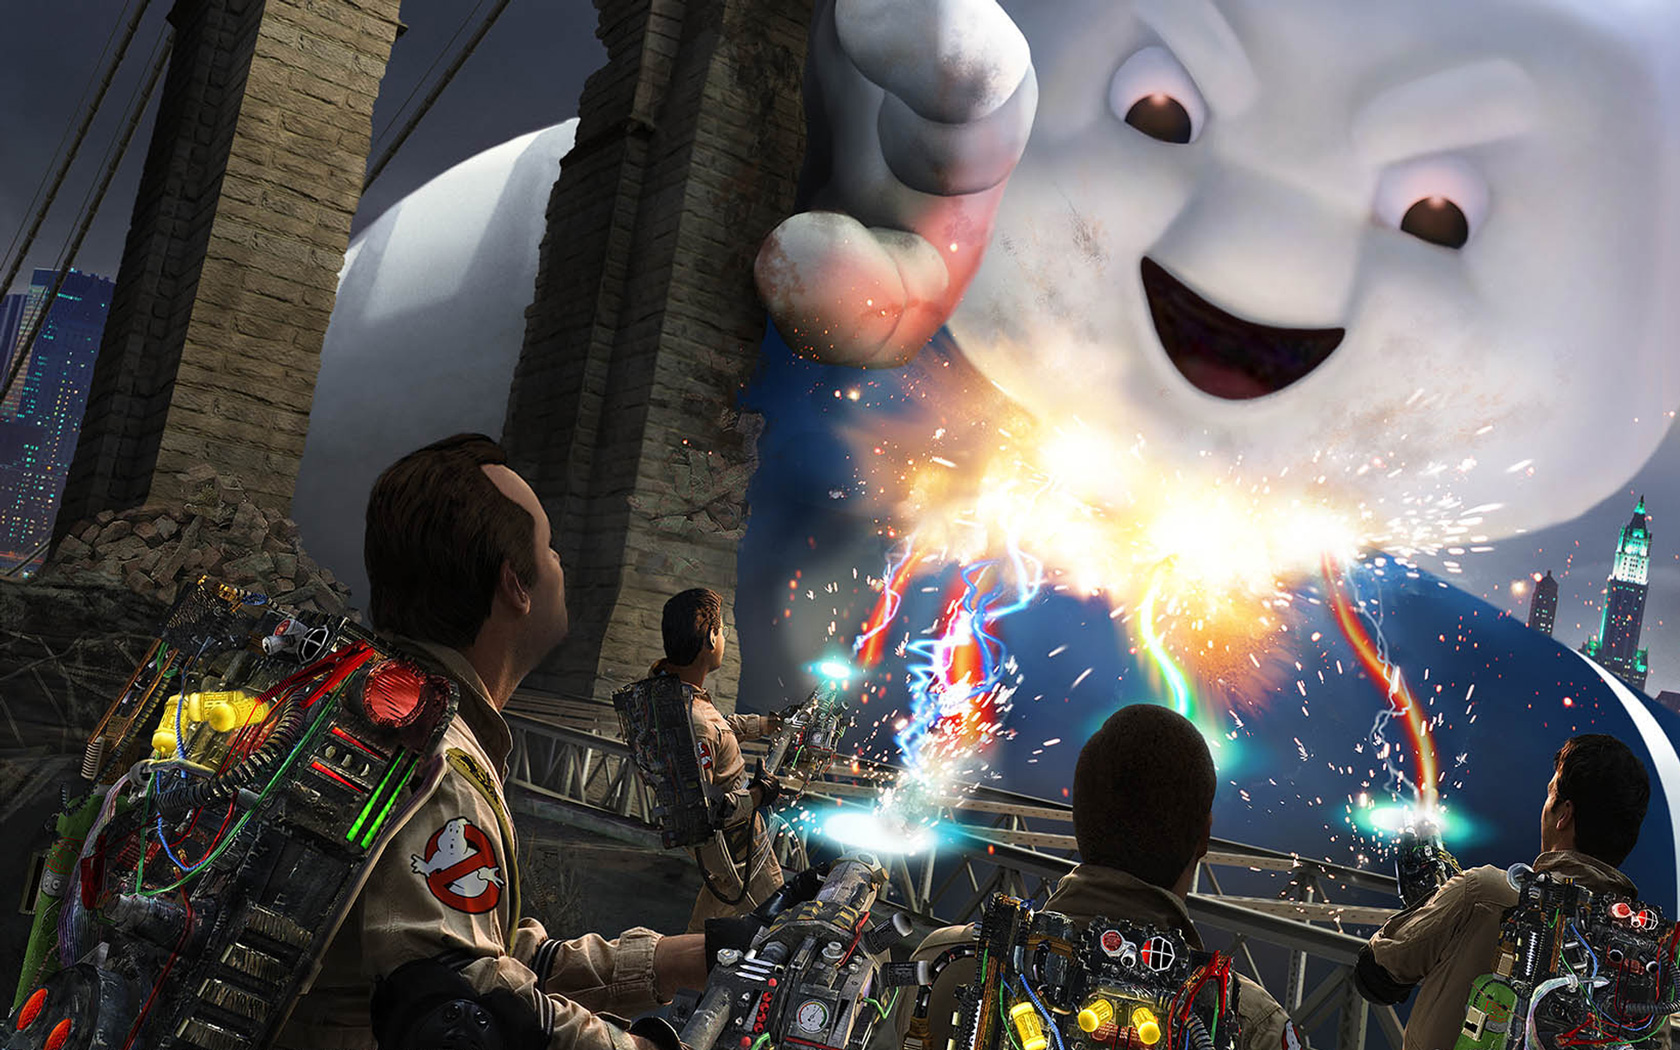 Free Ghostbusters: The Video Game Wallpaper in 1680x1050